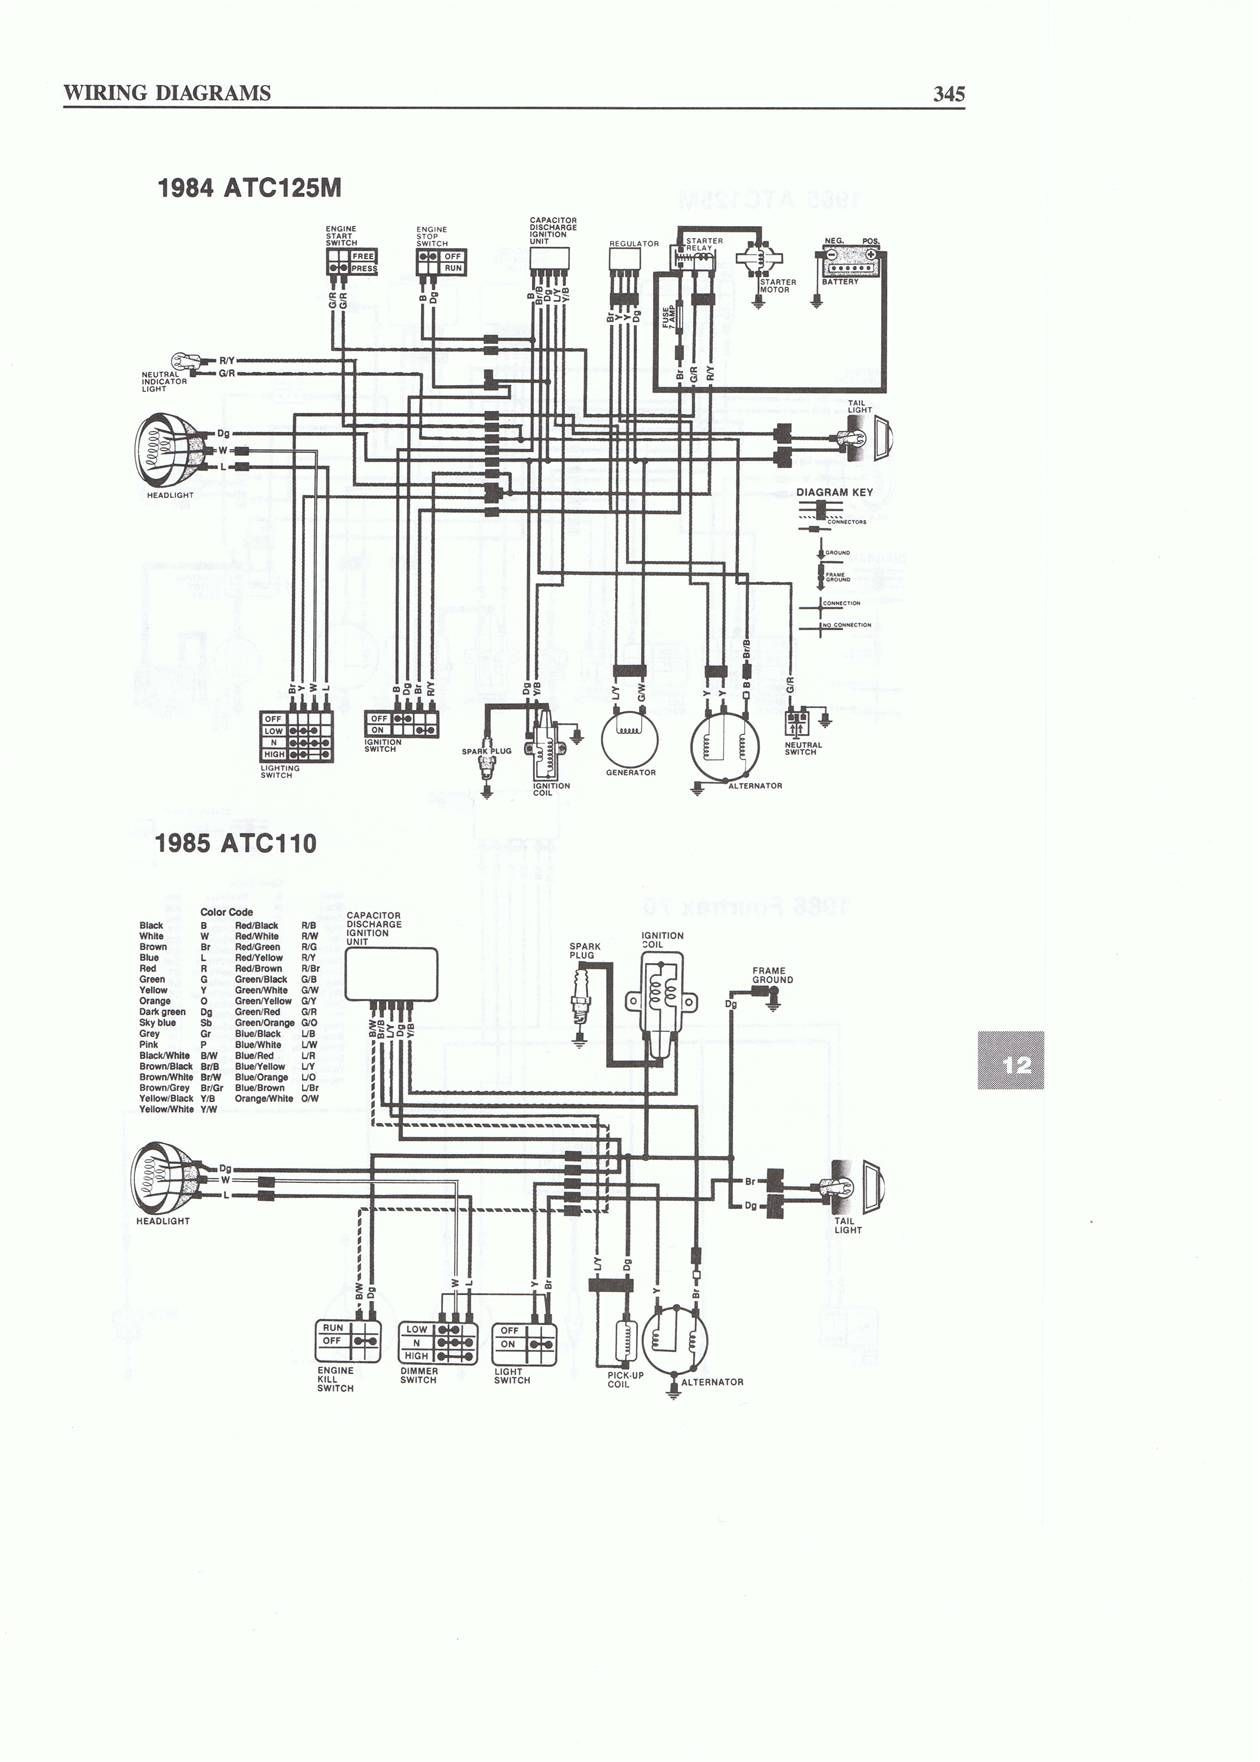 baja 50 atv wiring diagram wiring diagram featured baja 50 wiring diagram wiring diagram schematics baja 50 atv wiring diagram